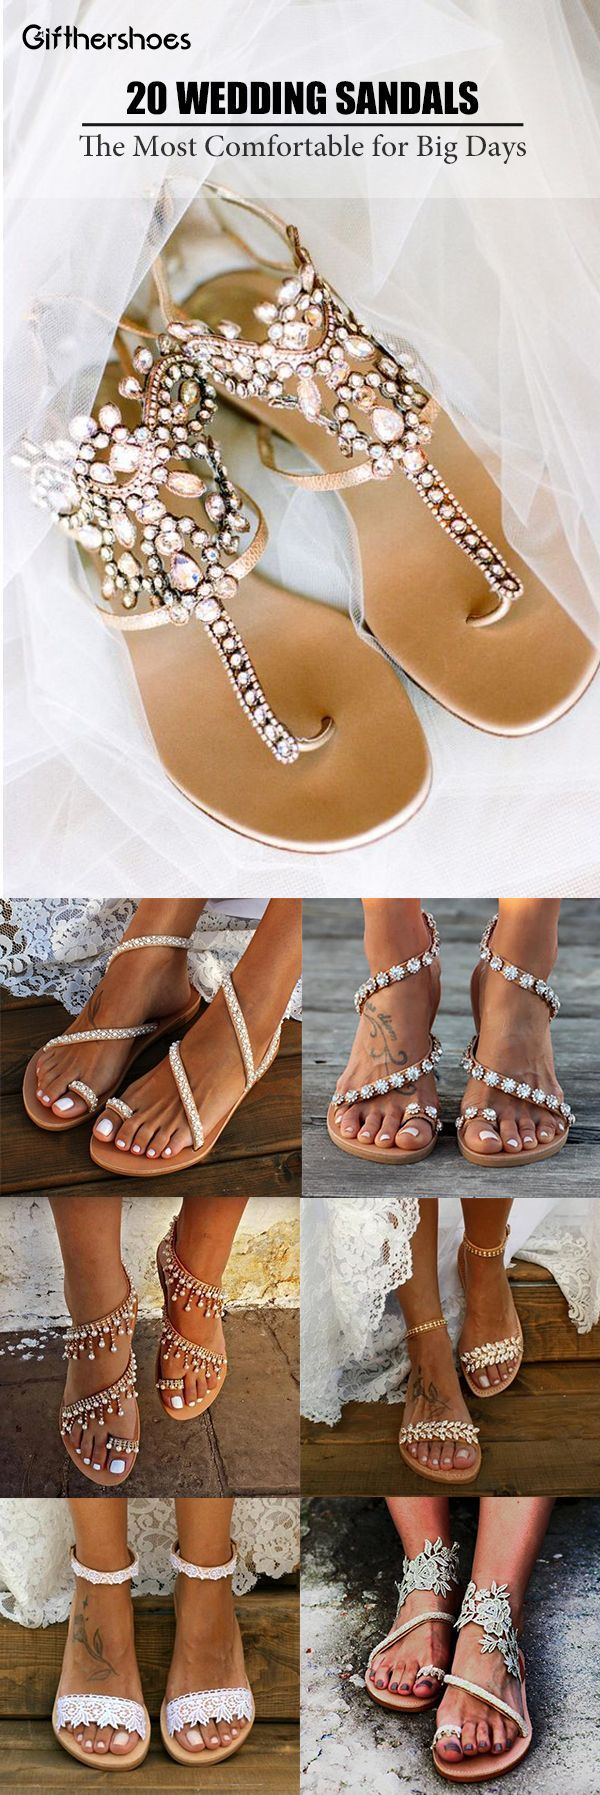 SHOP NOW>>20+ Comfy Wedding Bride Sandals Shoes Picks for Your Big Day.